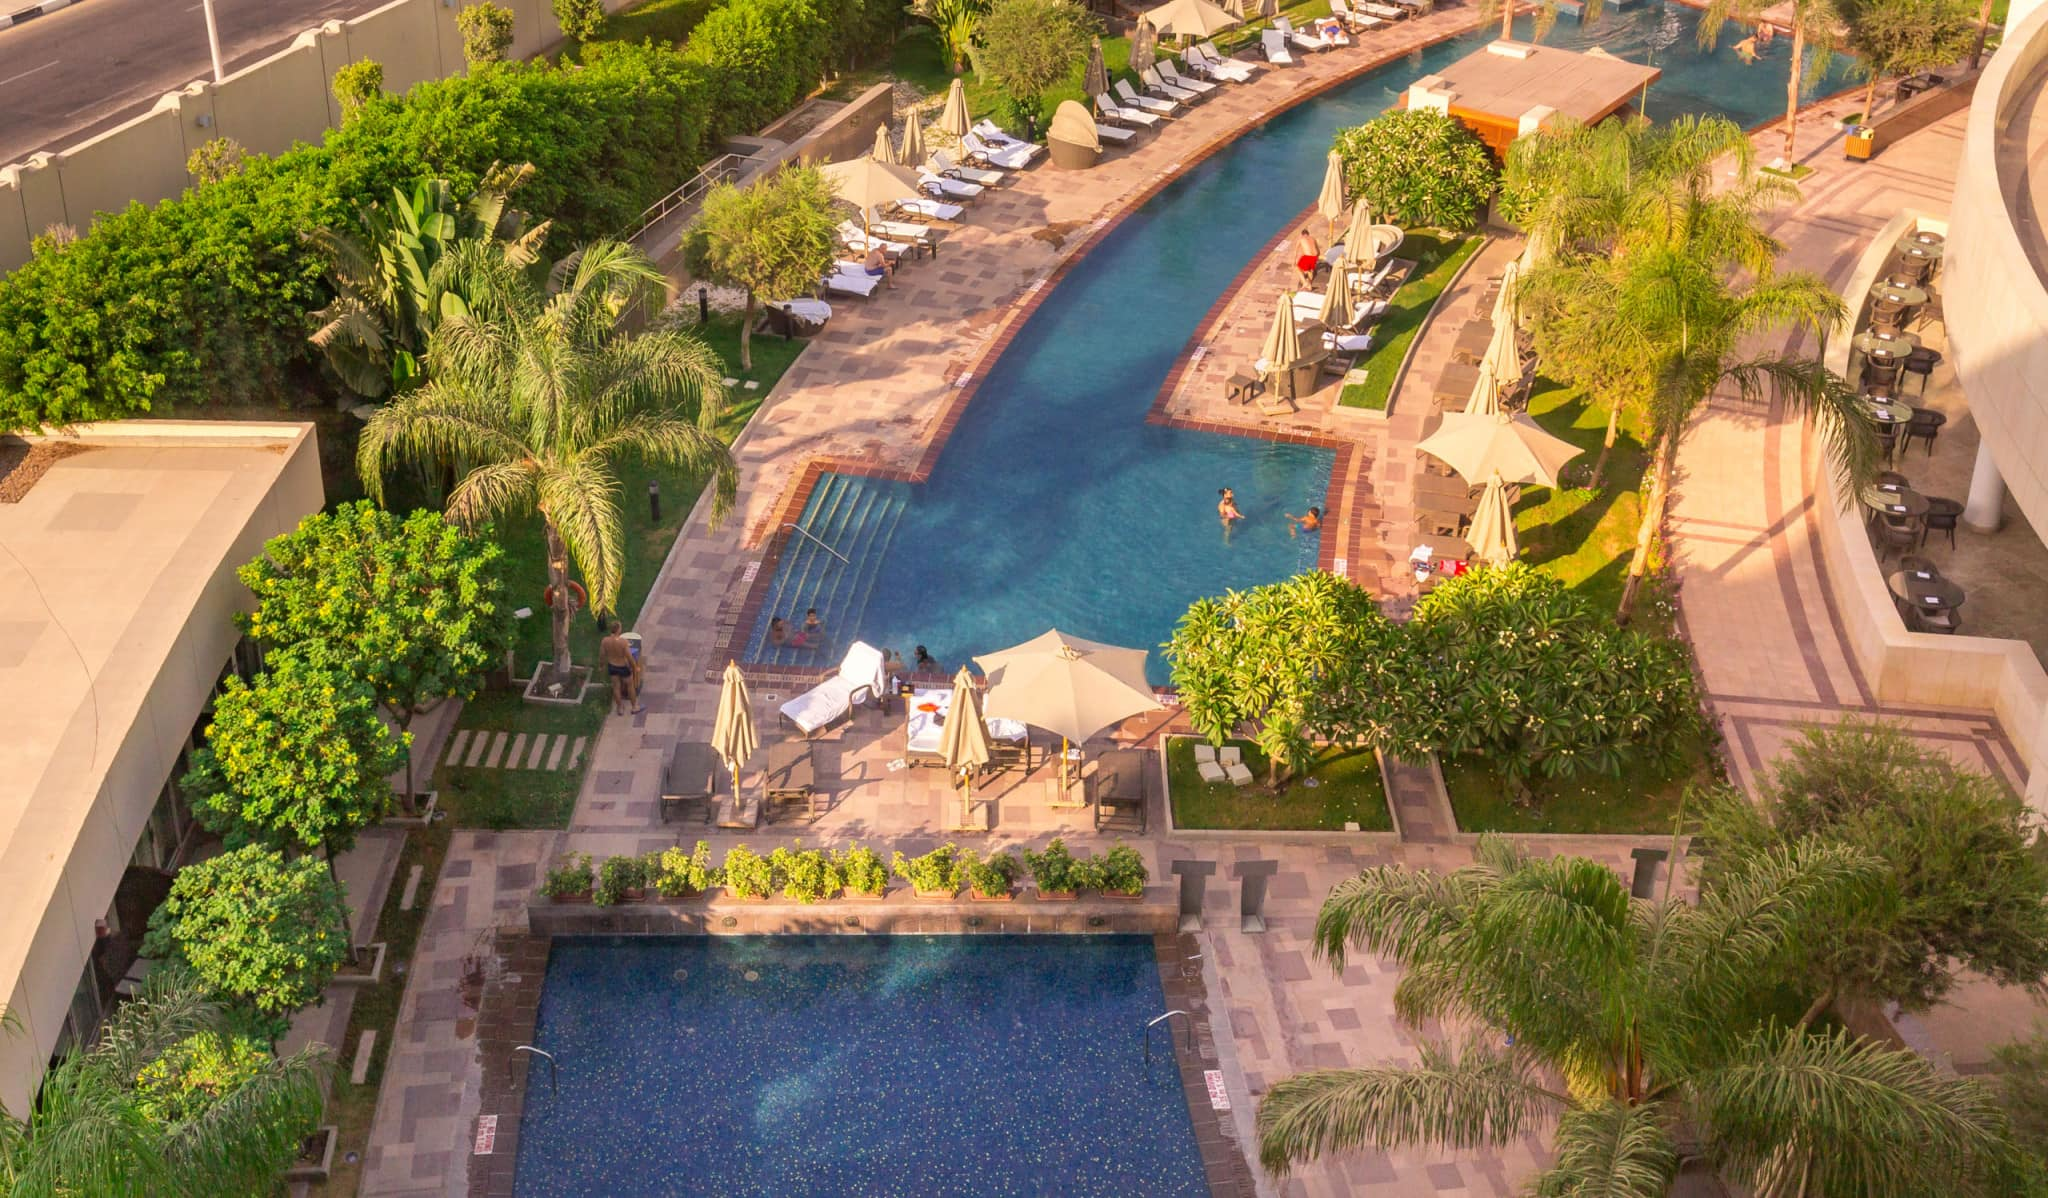 EGYPT - Le Méridien Cairo Airport is a resort where you do want to stopover!